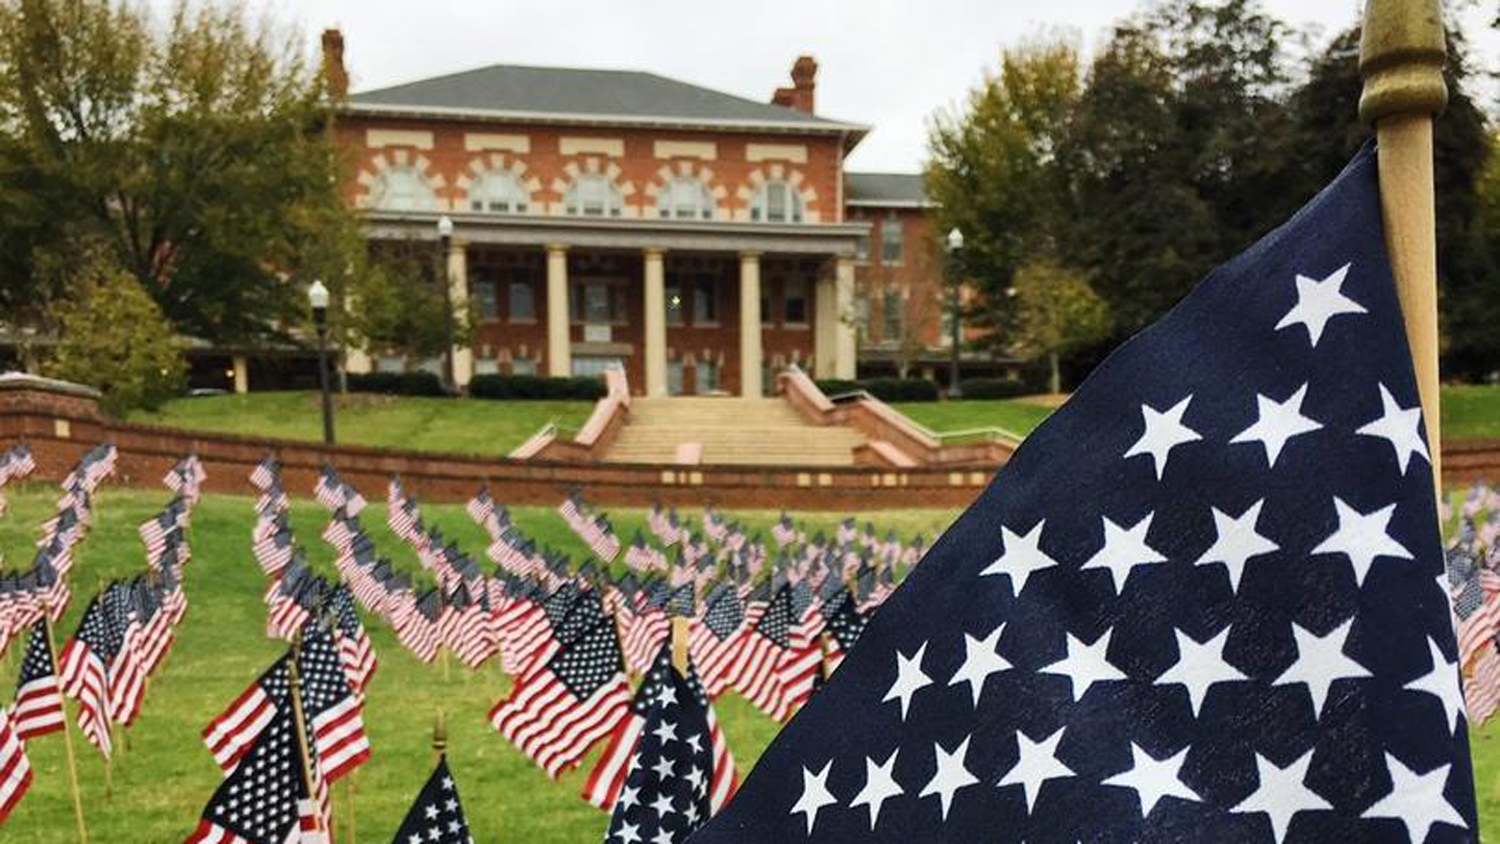 Flags line the Court of North Carolina for Veterans Day.